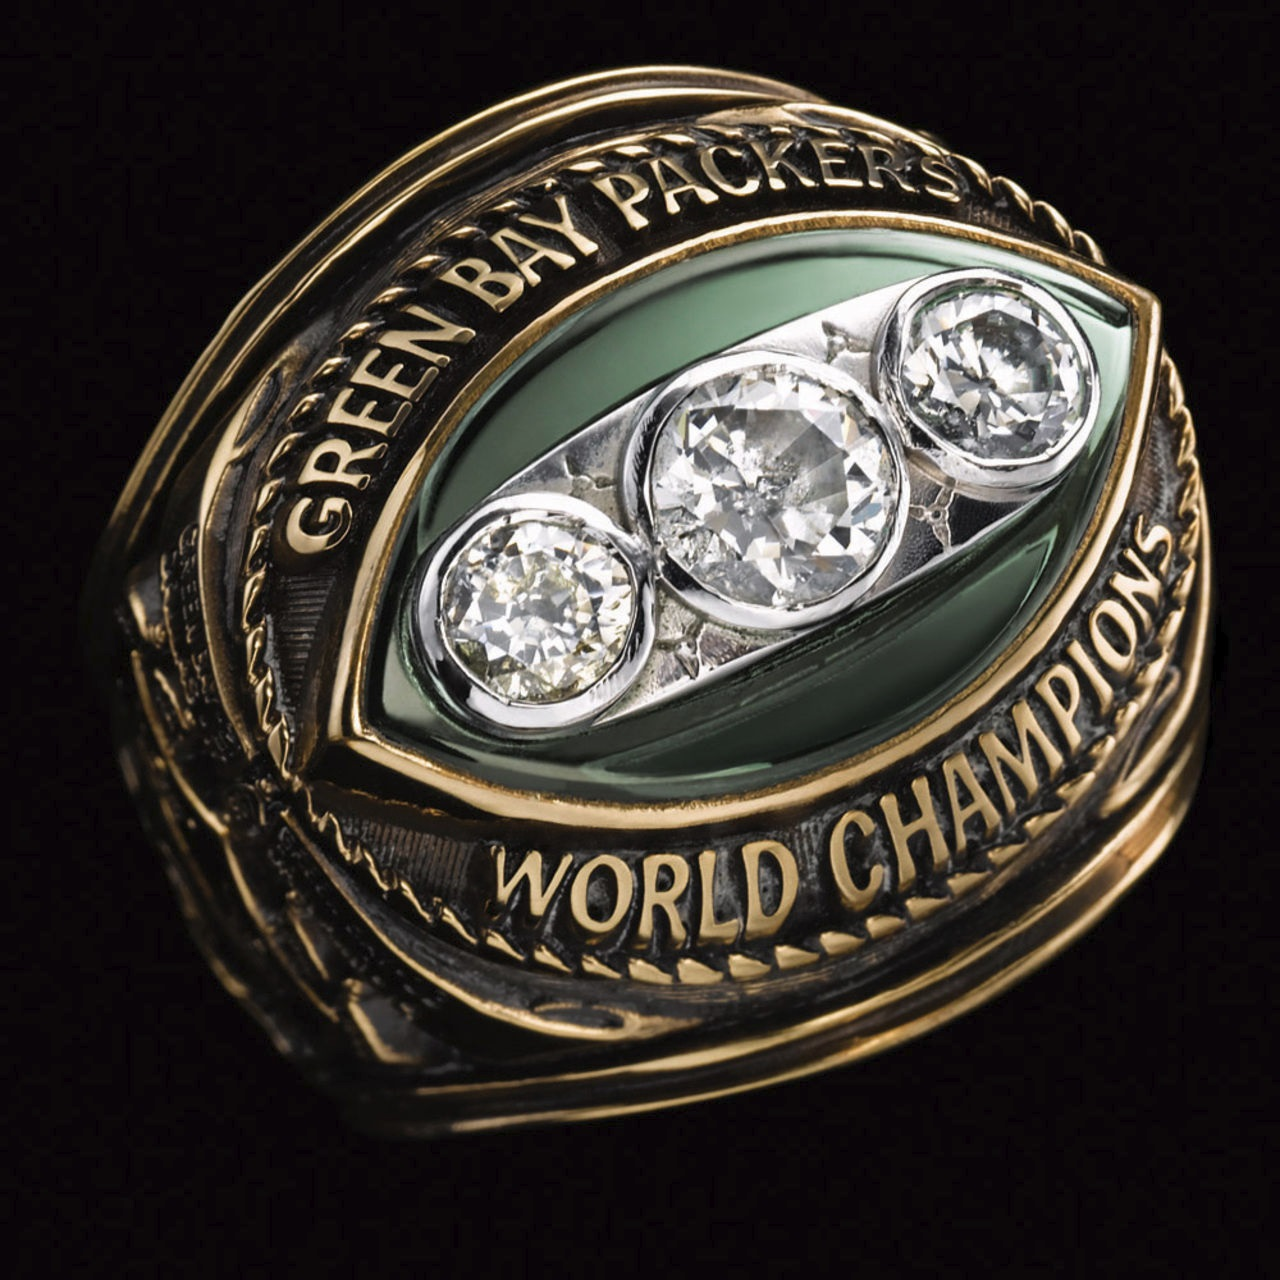 Green Bay Packers 1968 champions ring